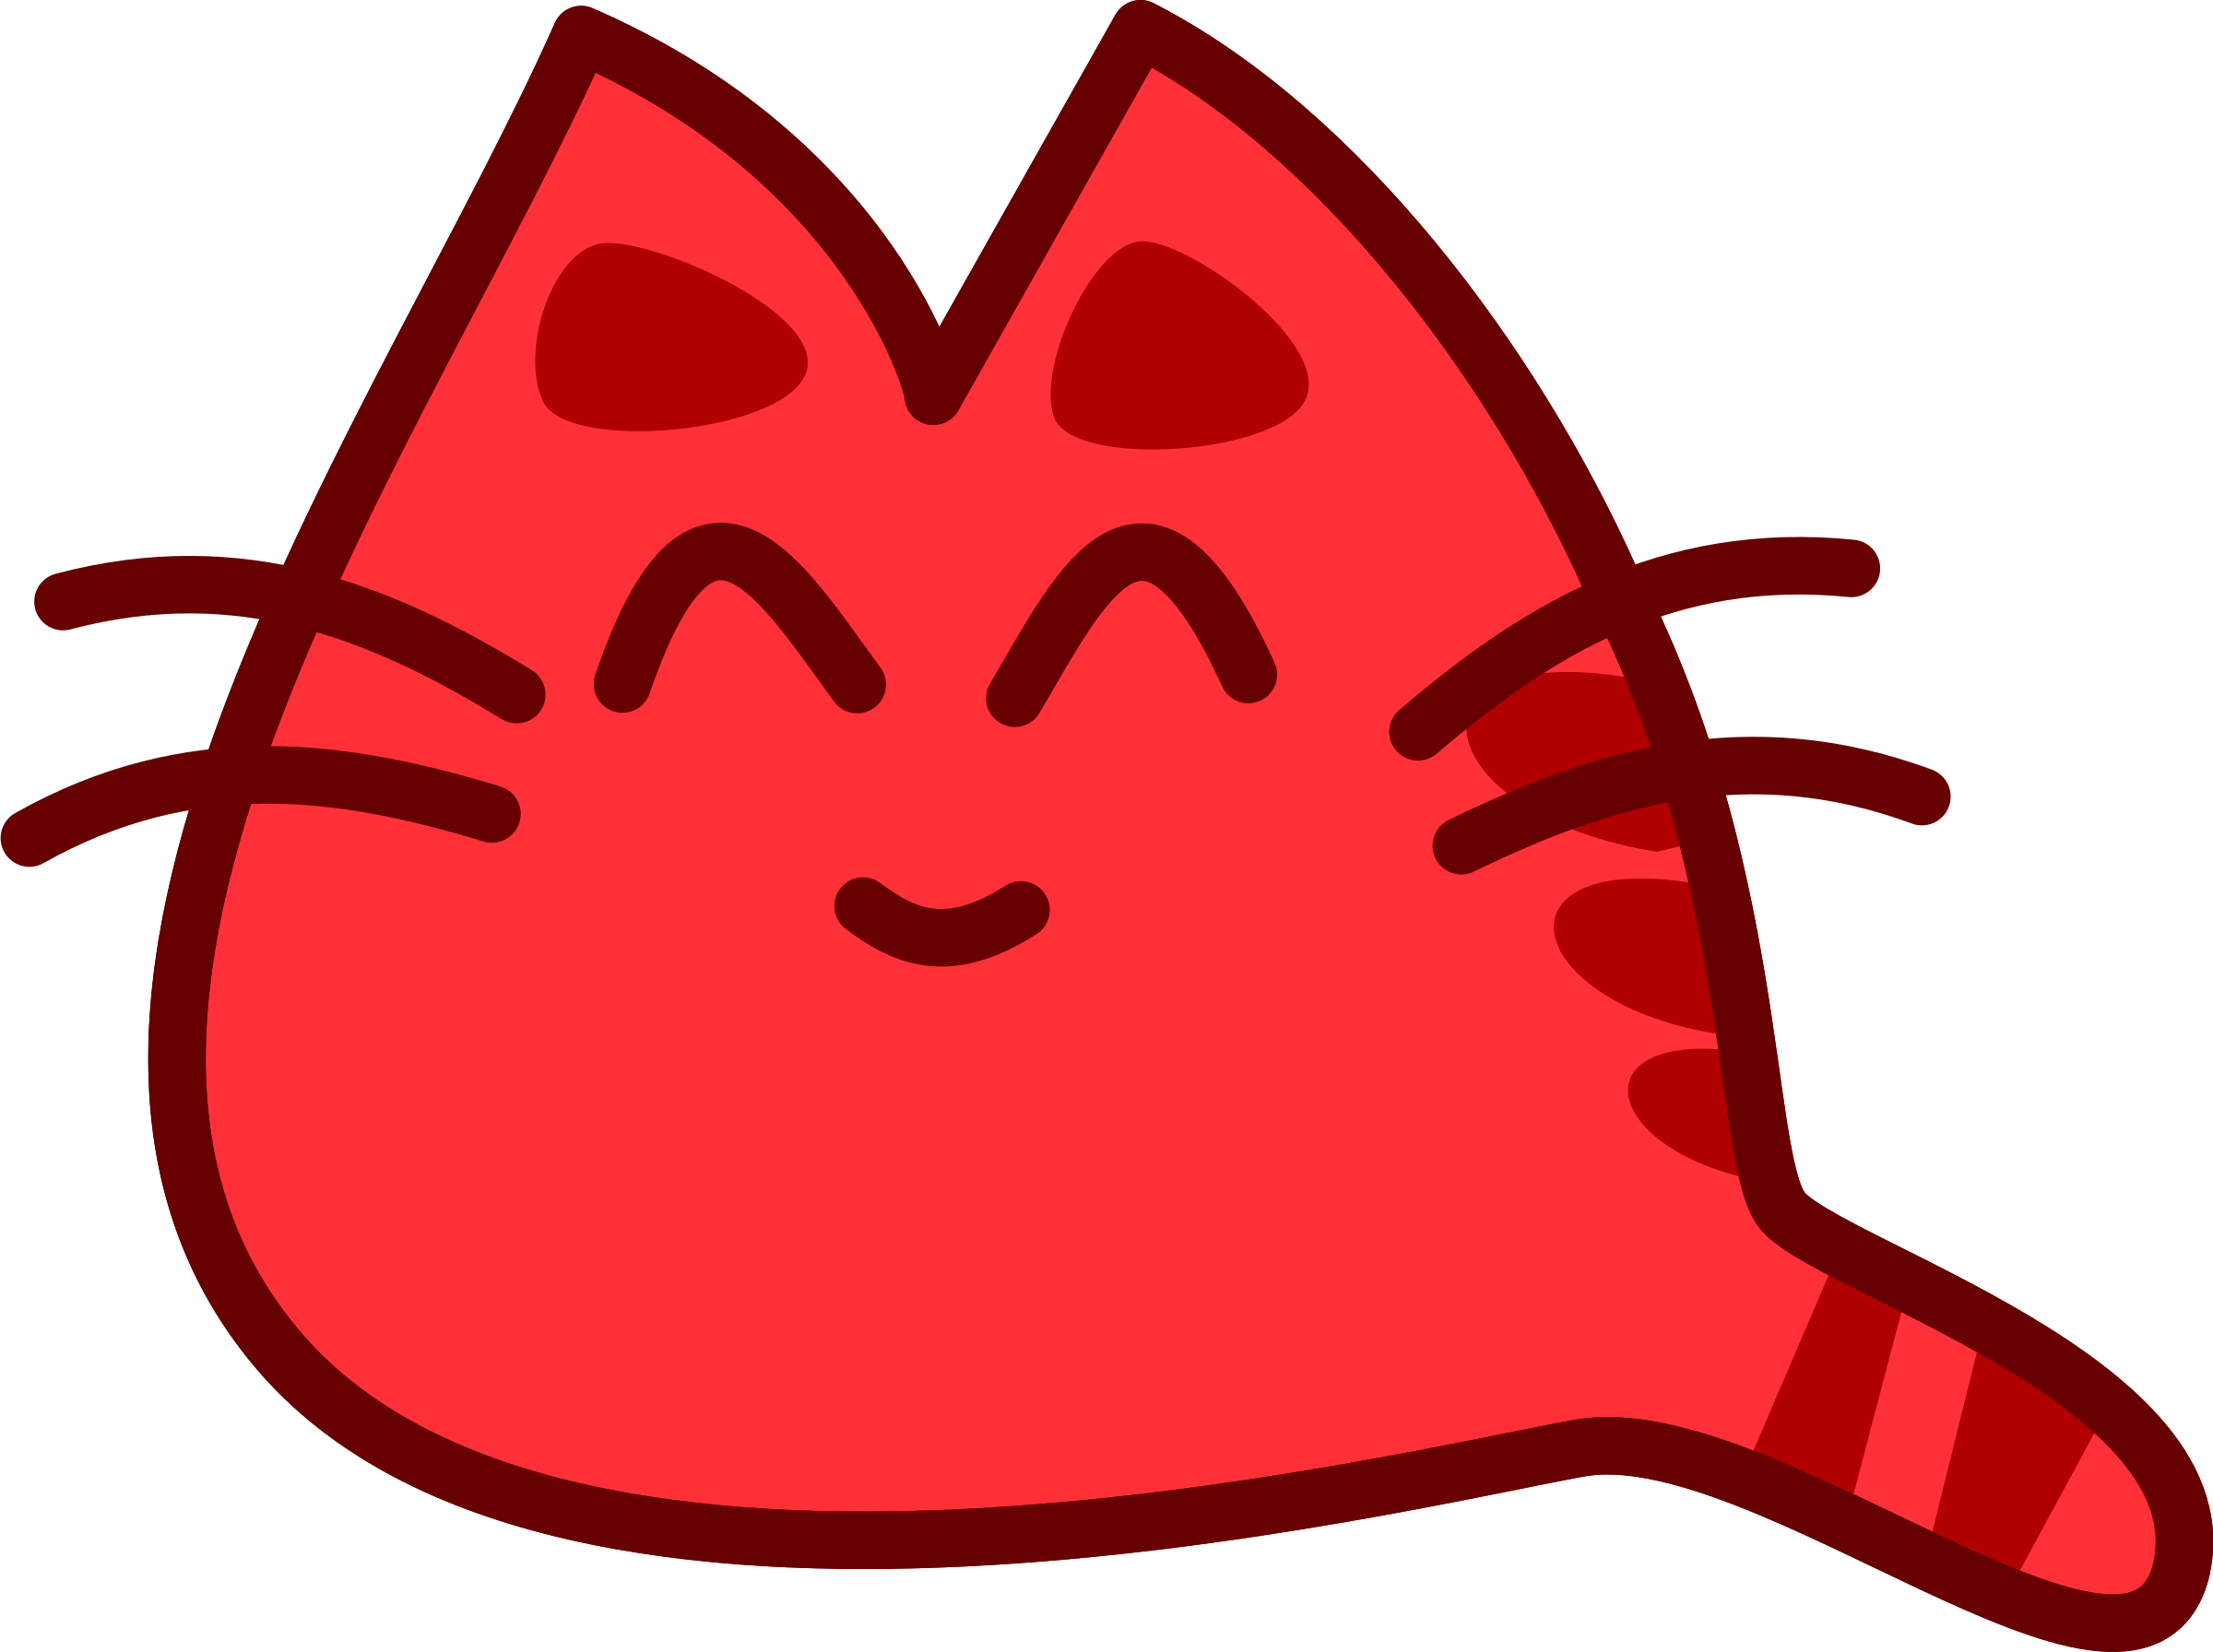 picture transparent Cat big image png. Smiling clipart red